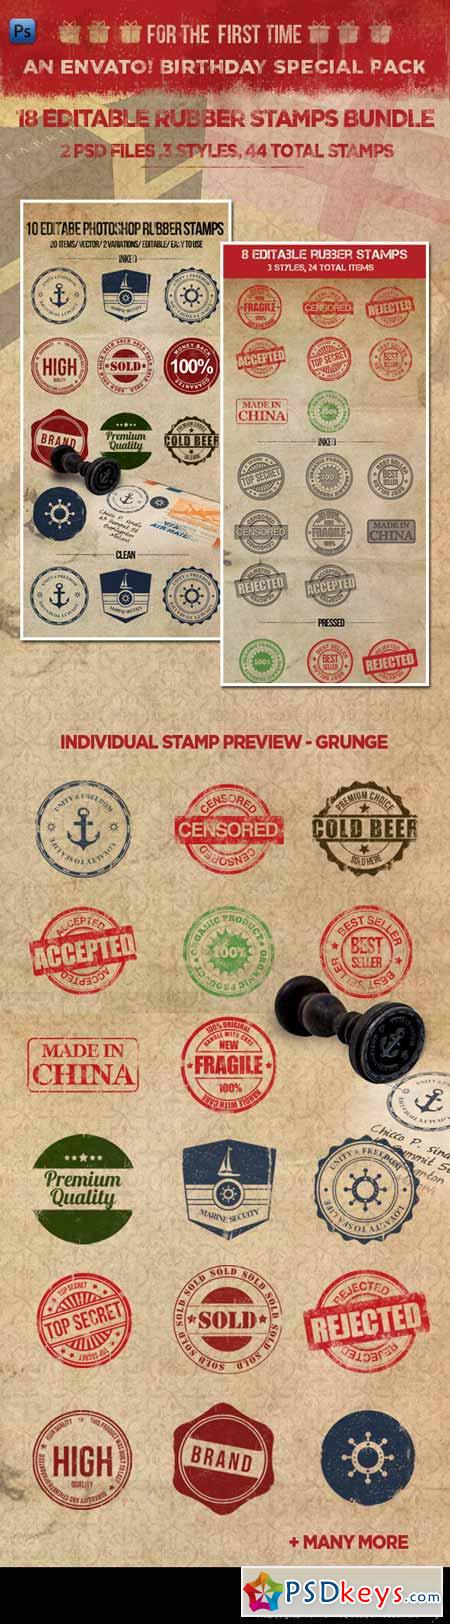 18 Editable Rubber Stamps Bundle 2891297